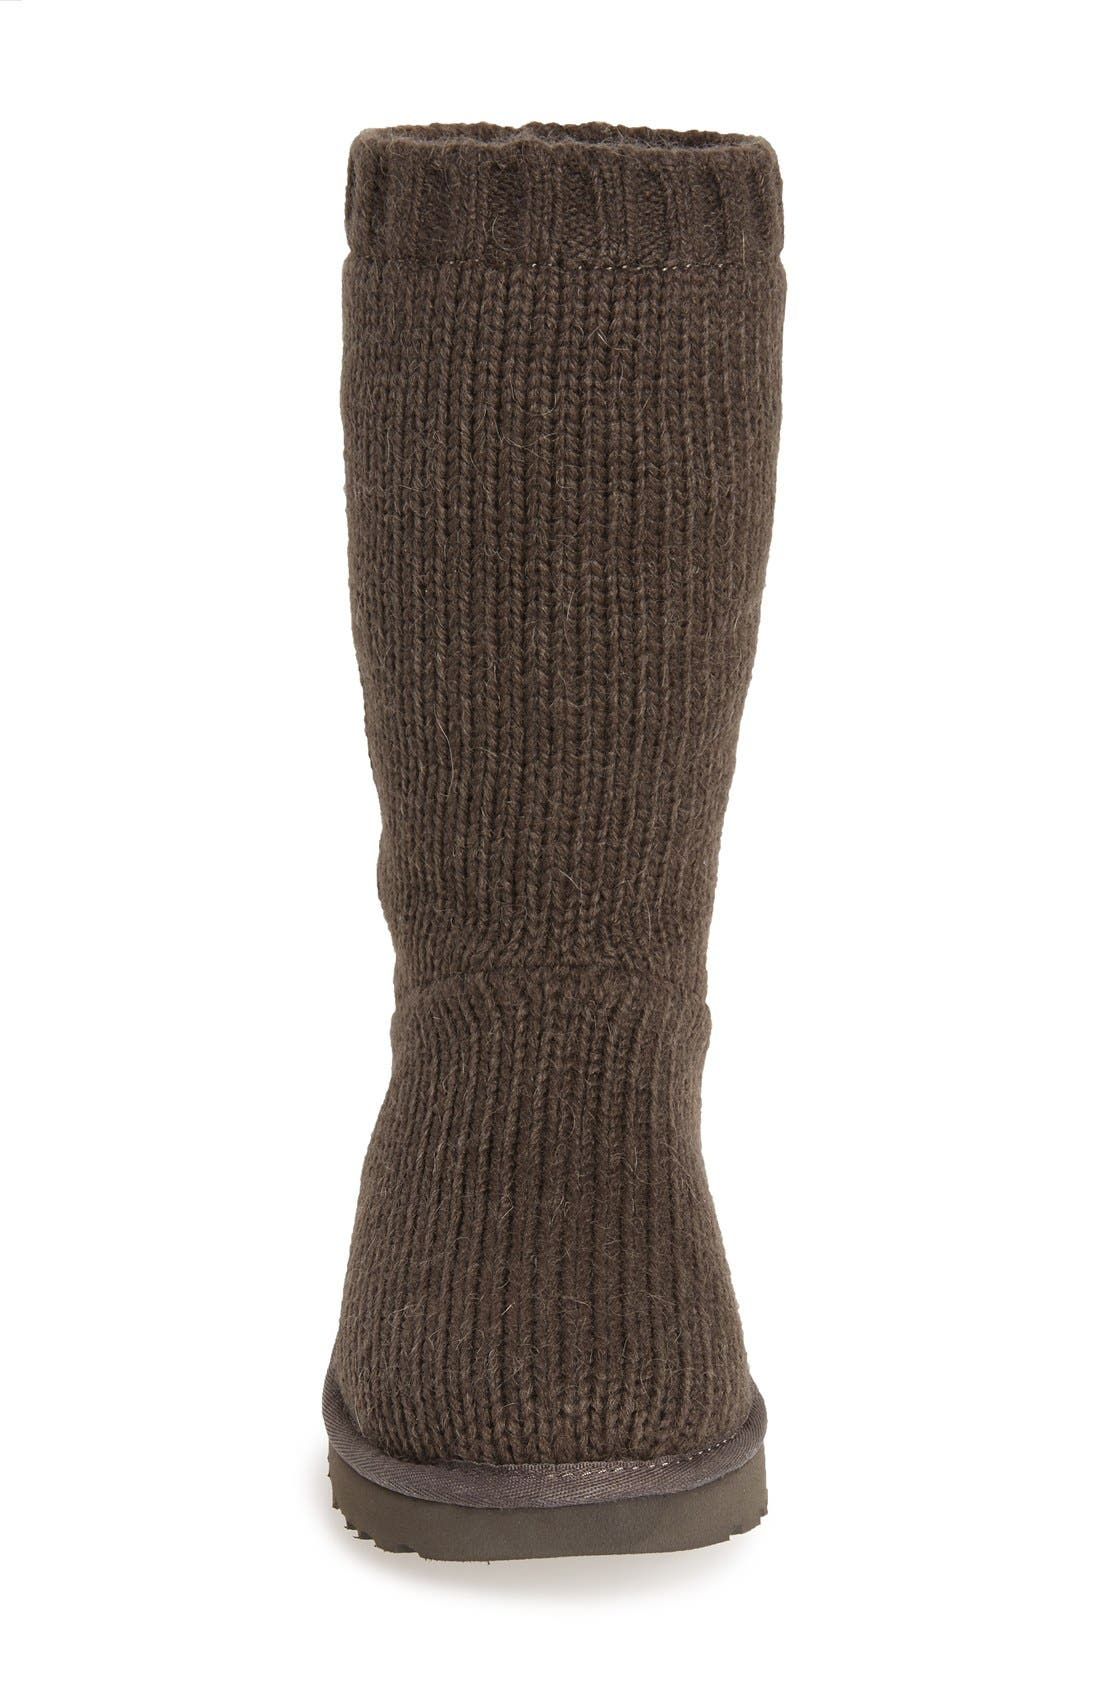 Alternate Image 3  - UGG® 'Capra' Ribbed Knit Genuine Shearling Lined Boot (Women)